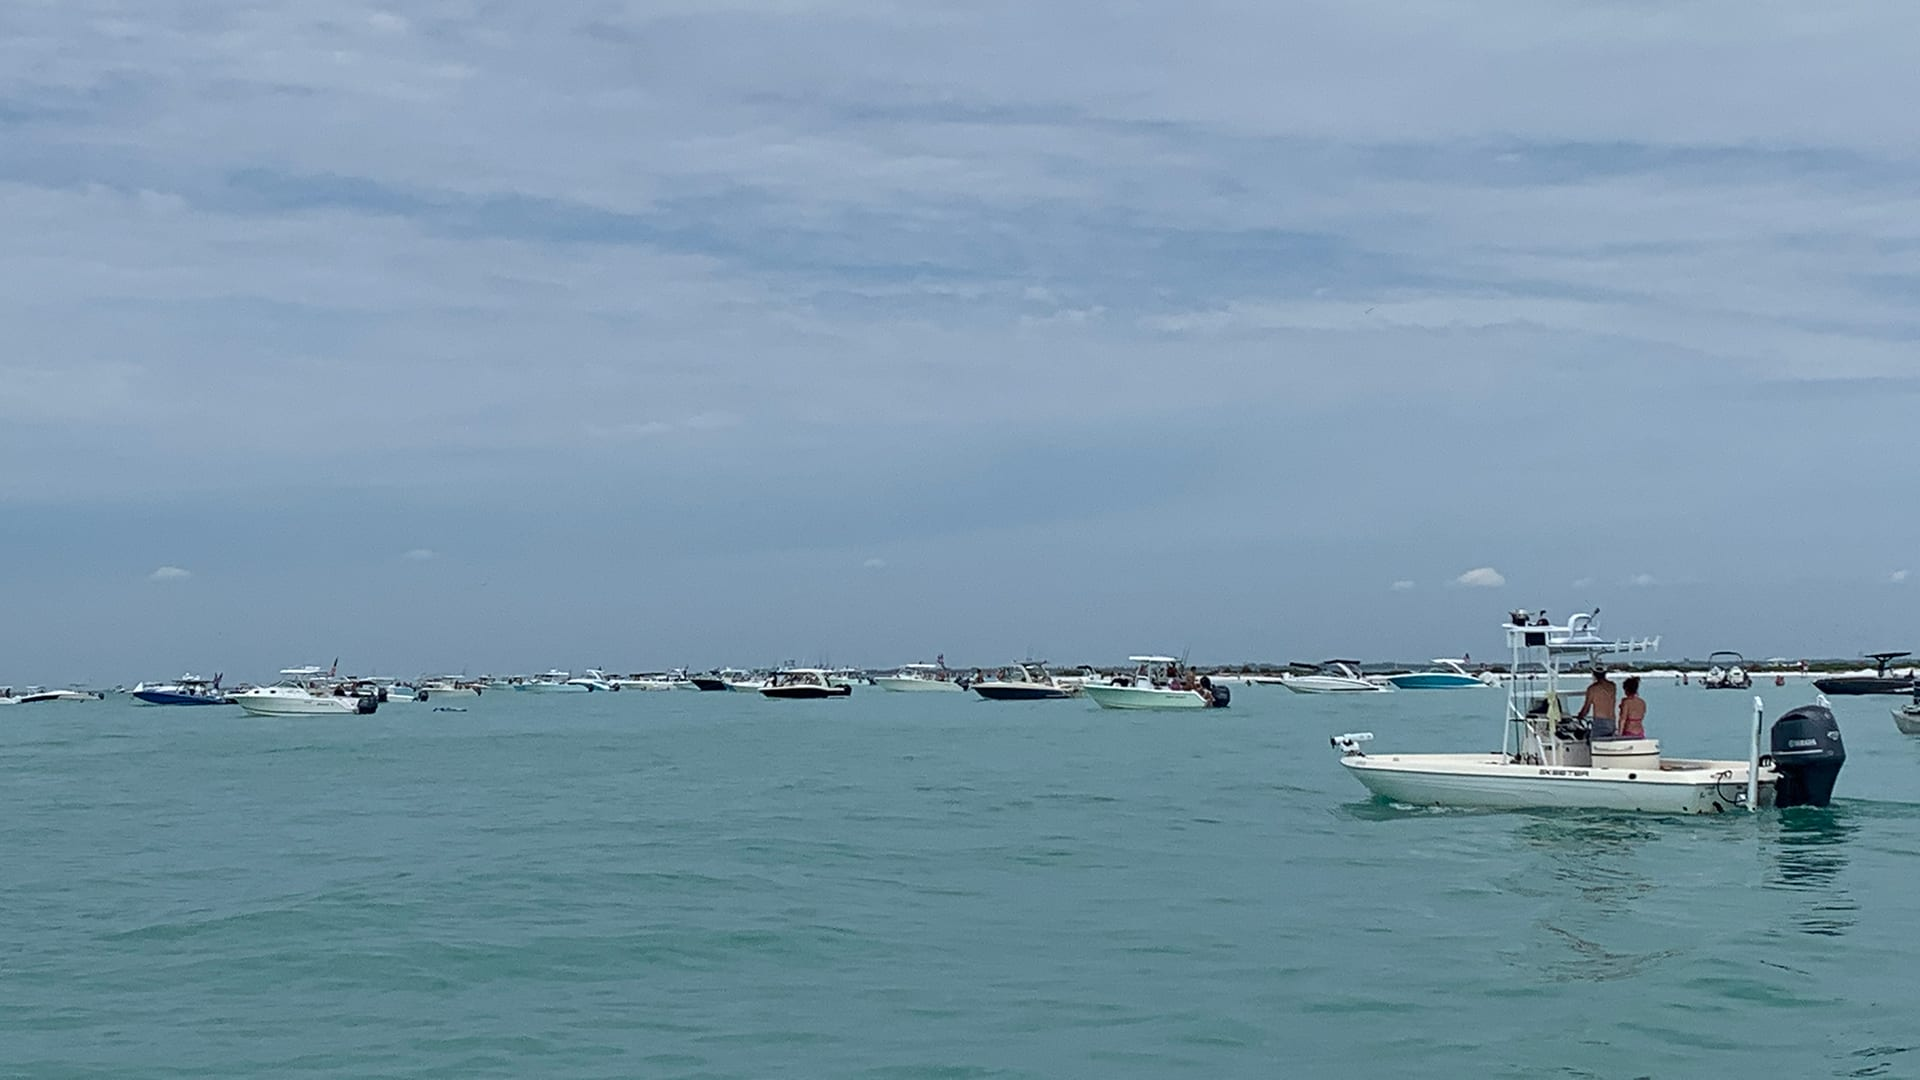 Recreational boats gather by Passage Key at the mouth of Sarasota Bay in Florida, a now common scene on weekends during the pandemic. (Photo courtesy of Randall Wells)